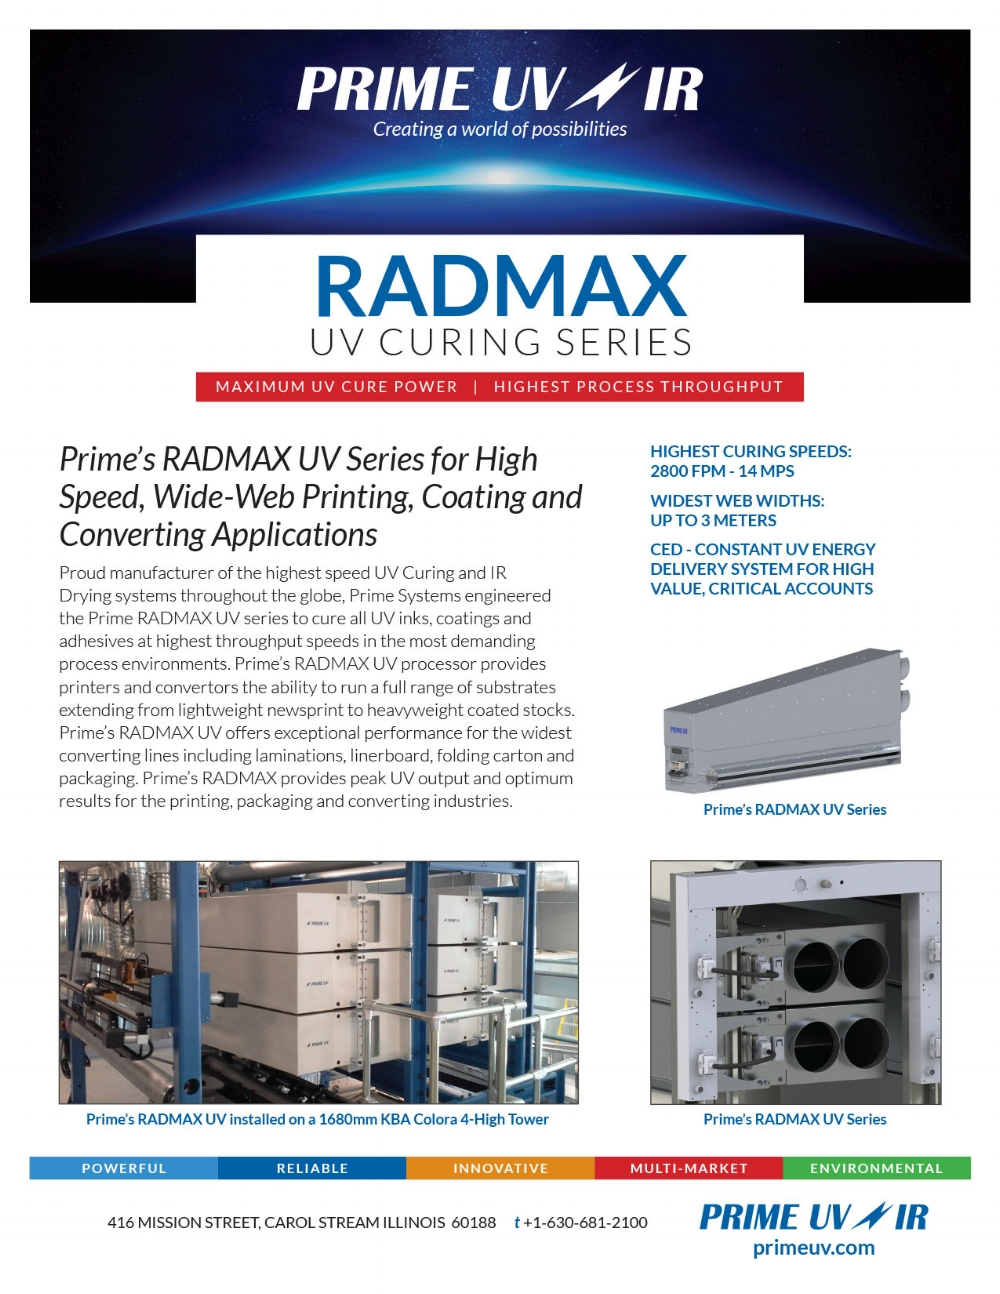 Rad Max UV Curing Series Information sheet